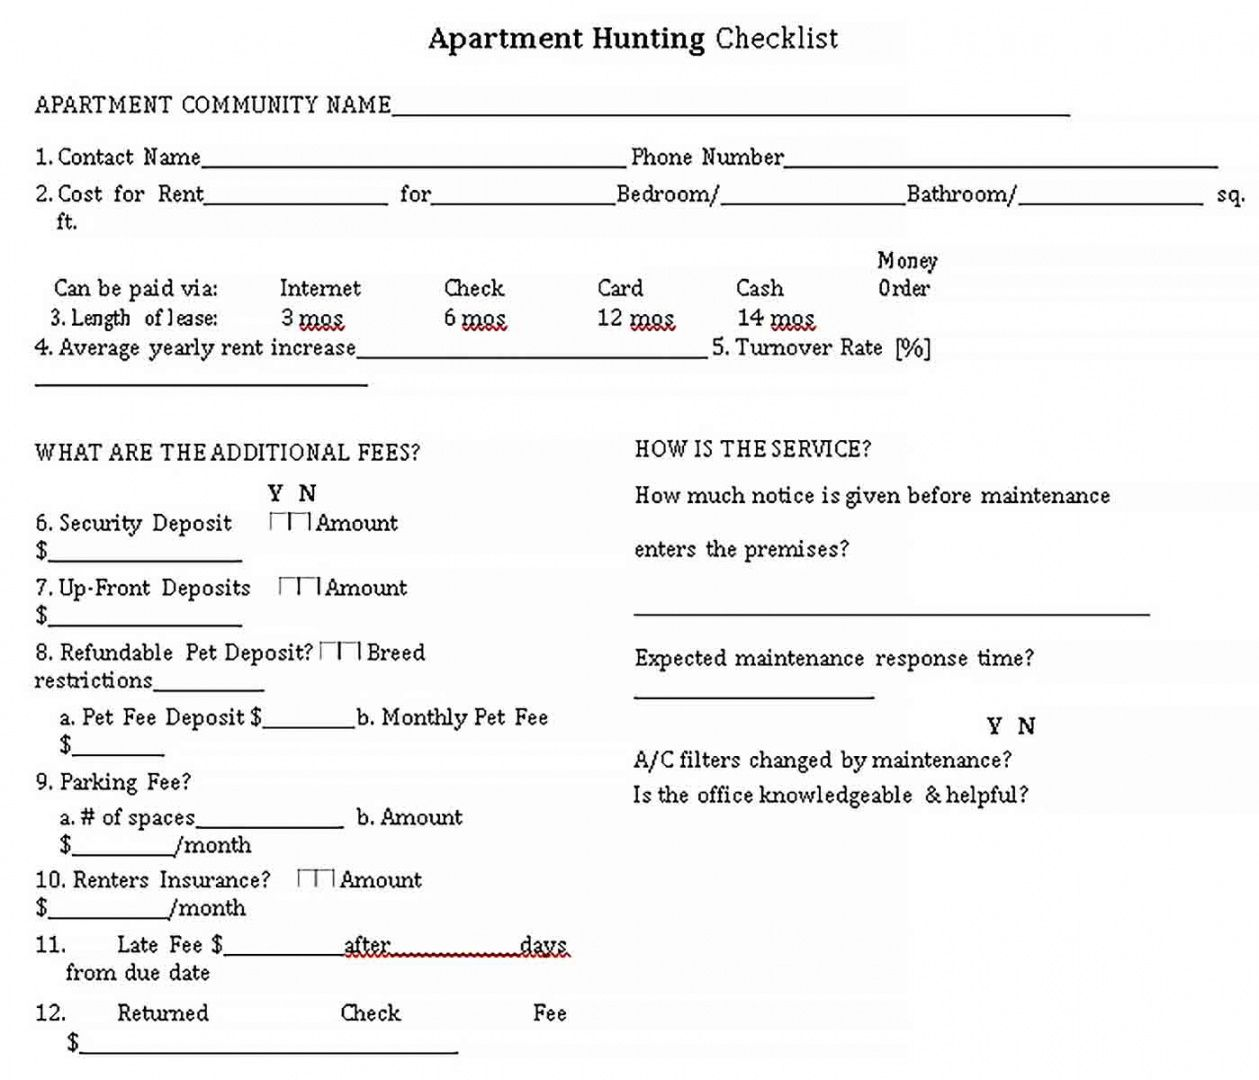 free new apartment checklist  welding rodeo designer apartment hunting checklist template